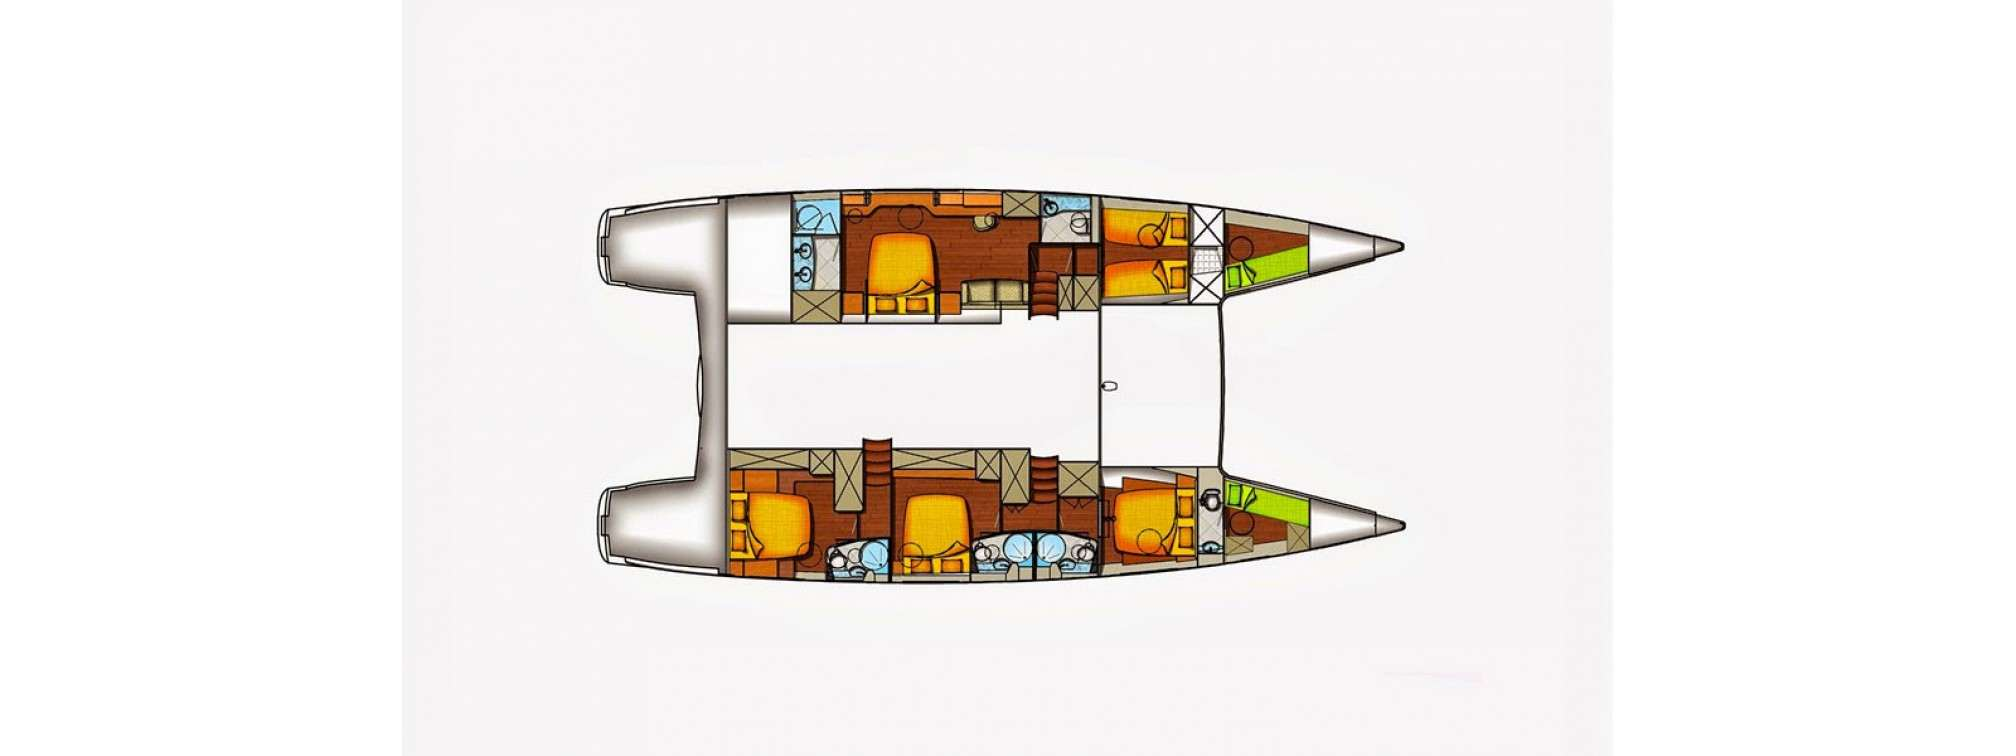 'World's End' catamaran charter layout